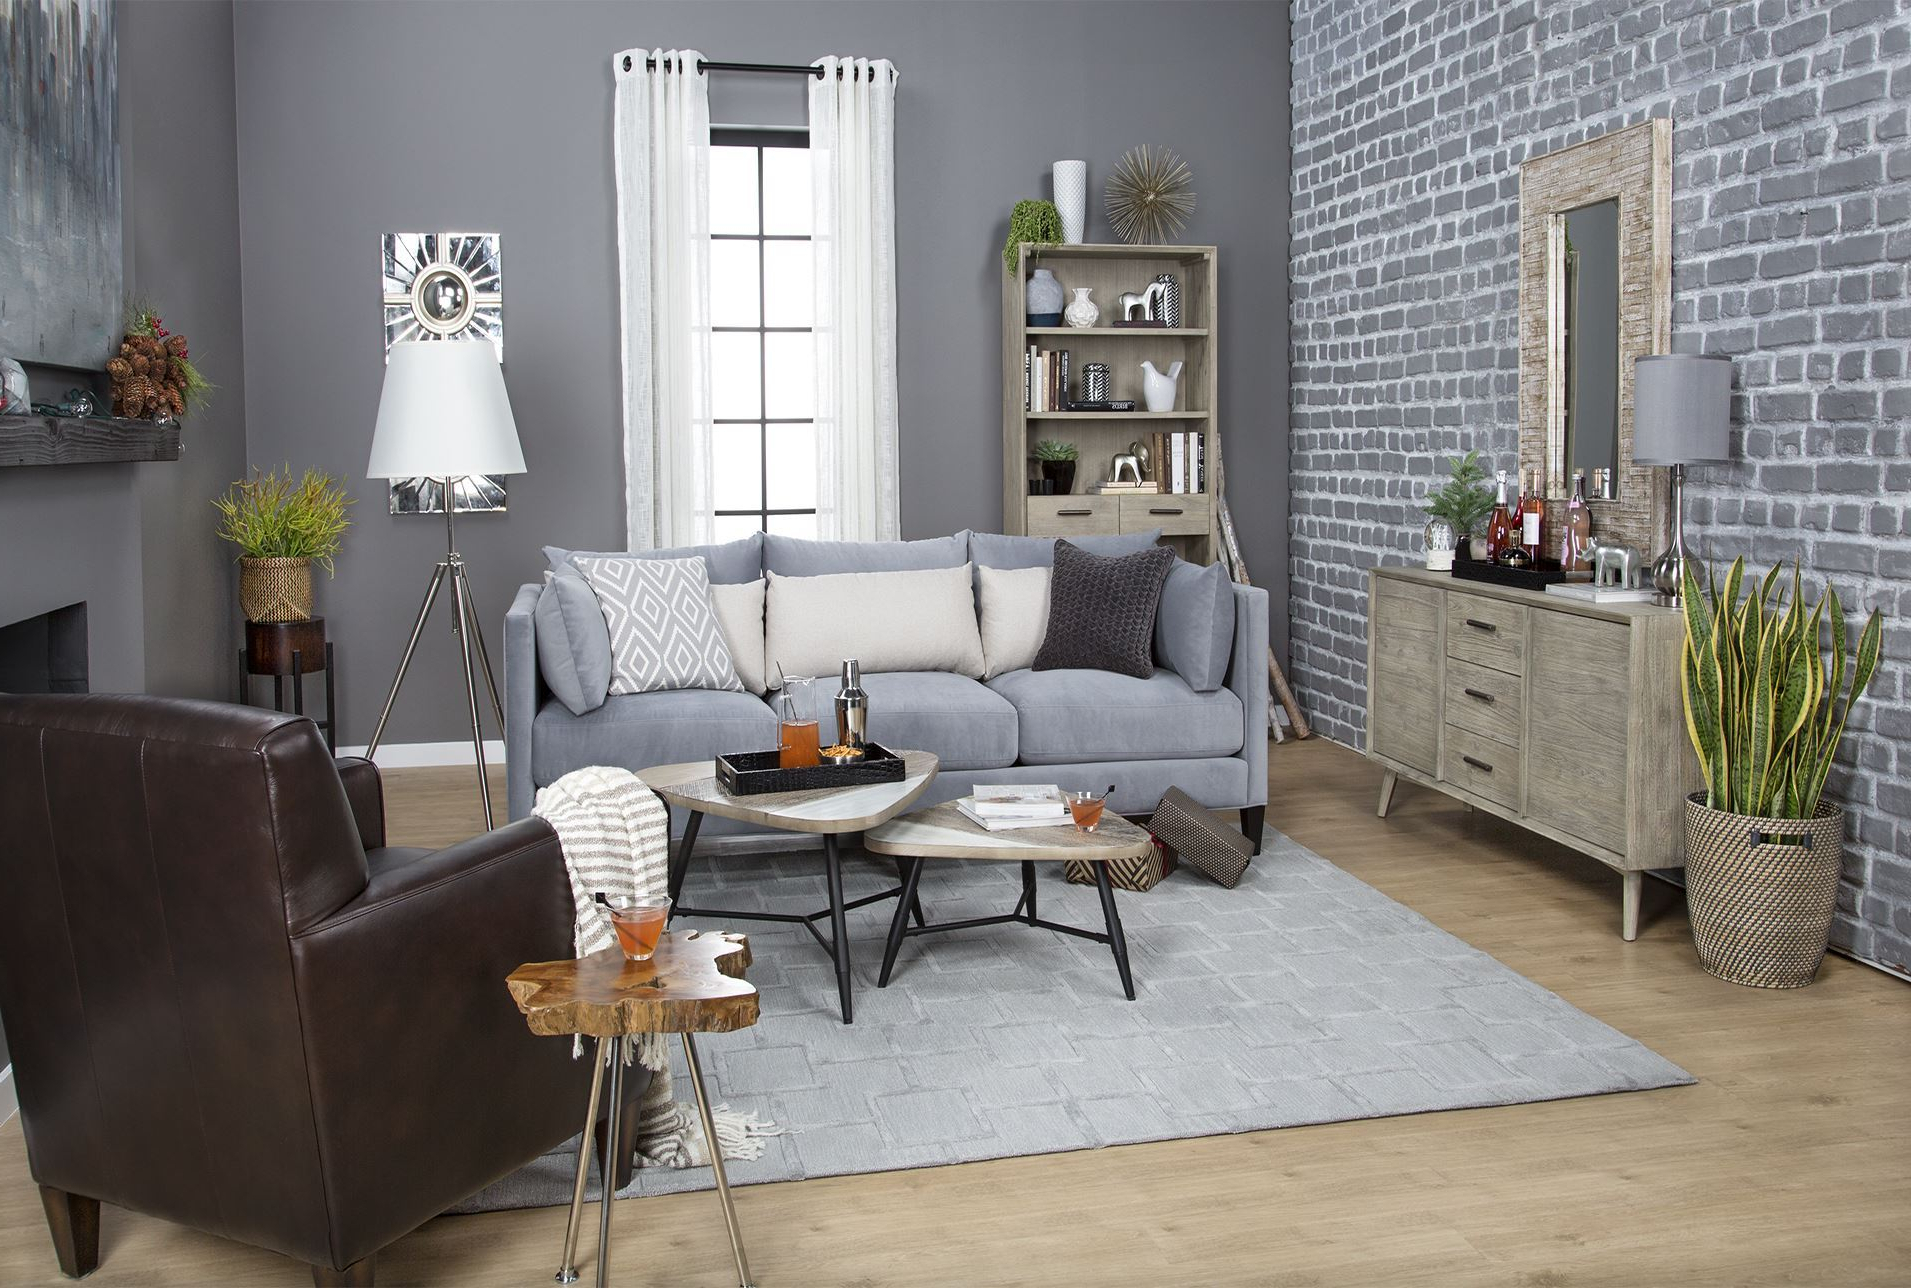 Widely Used Coffee Table: Living Spaces Coffee Table Living Spaces End Tables Inside Kai Small Coffee Tables (View 19 of 20)